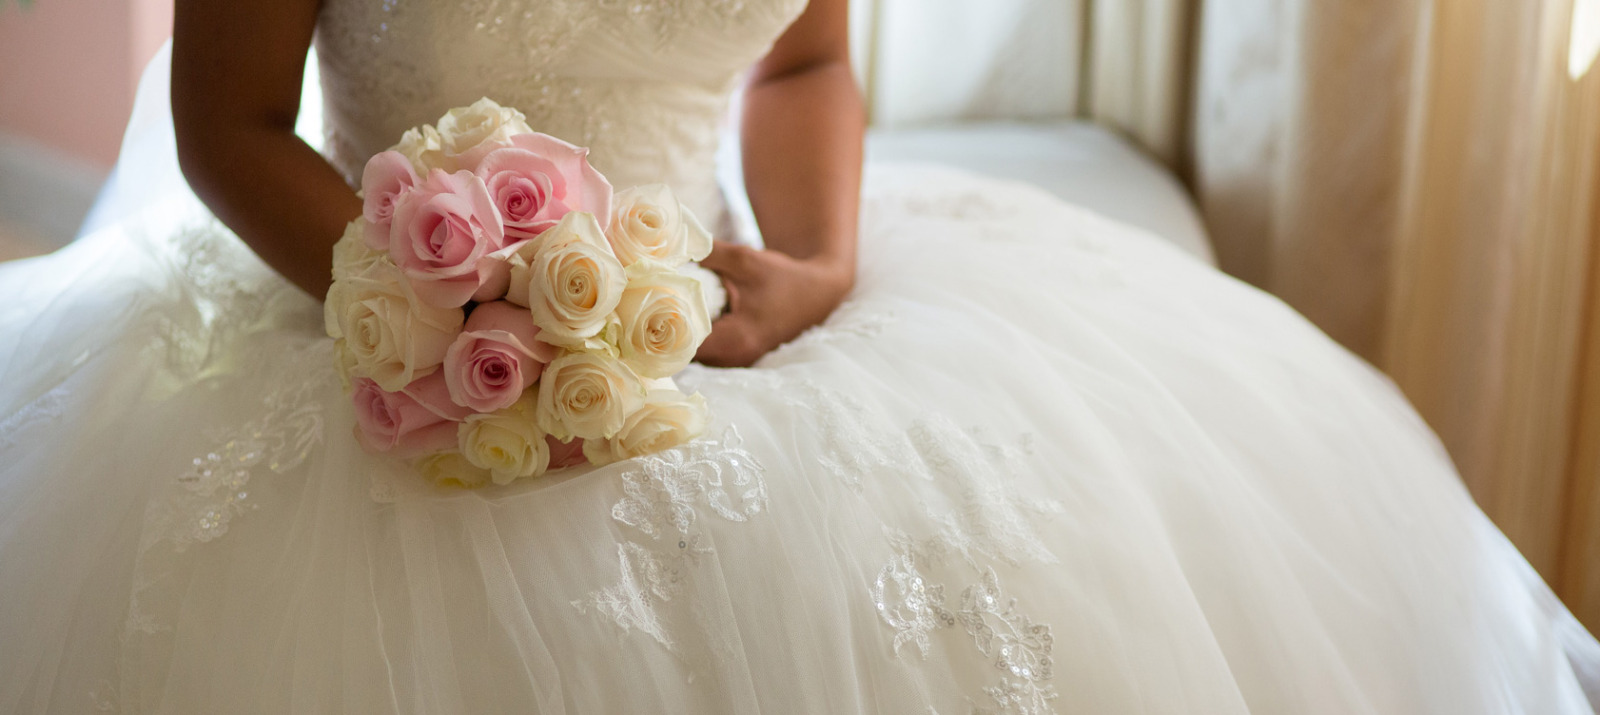 How Much Is Wedding Dress Dry Cleaning? | The Best Wedding Dresses